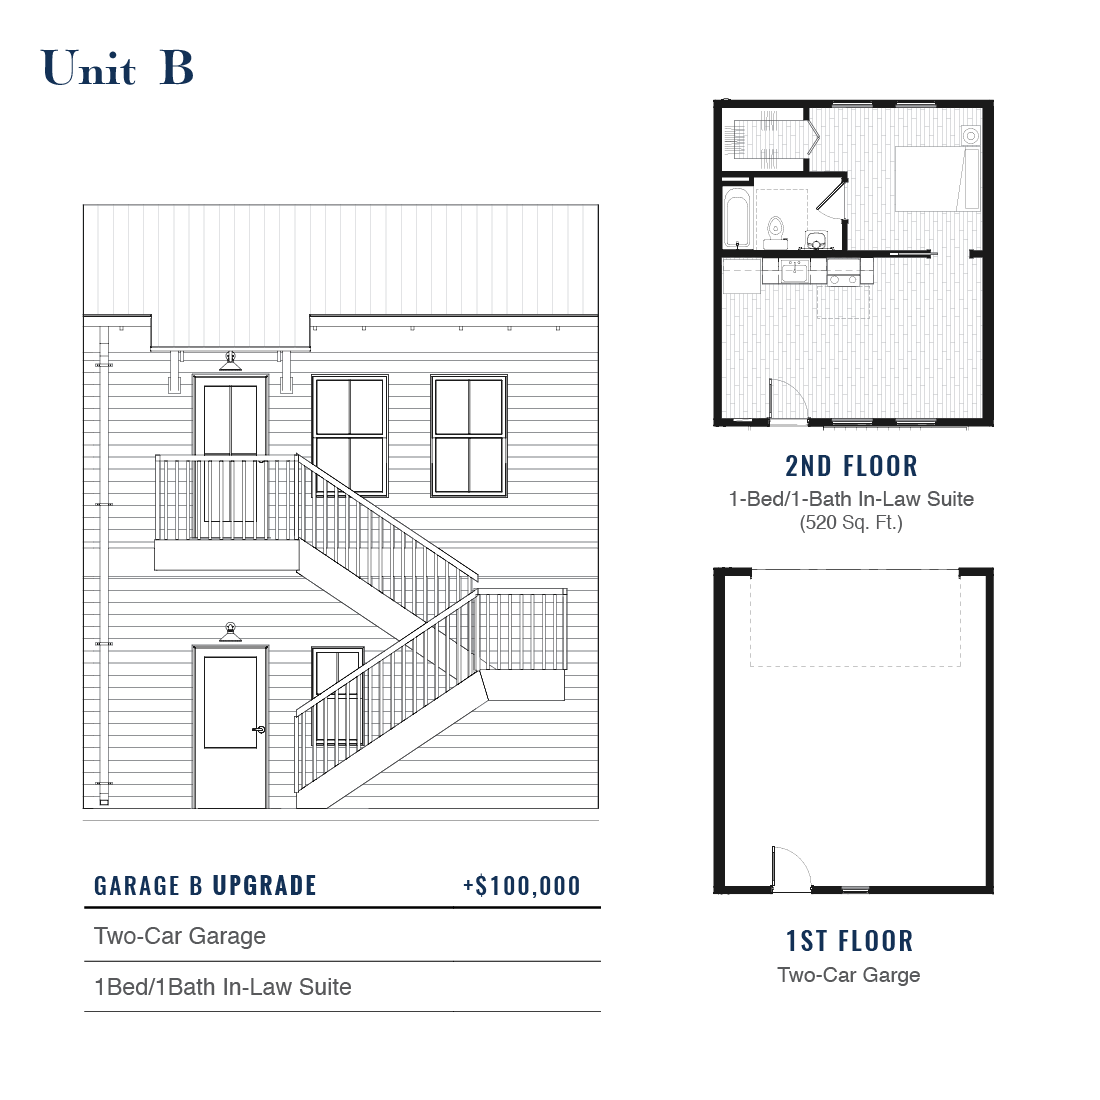 Unit B Premium Garage with ADU | East Wilbur LiveWorks, Downtown Lake Mary